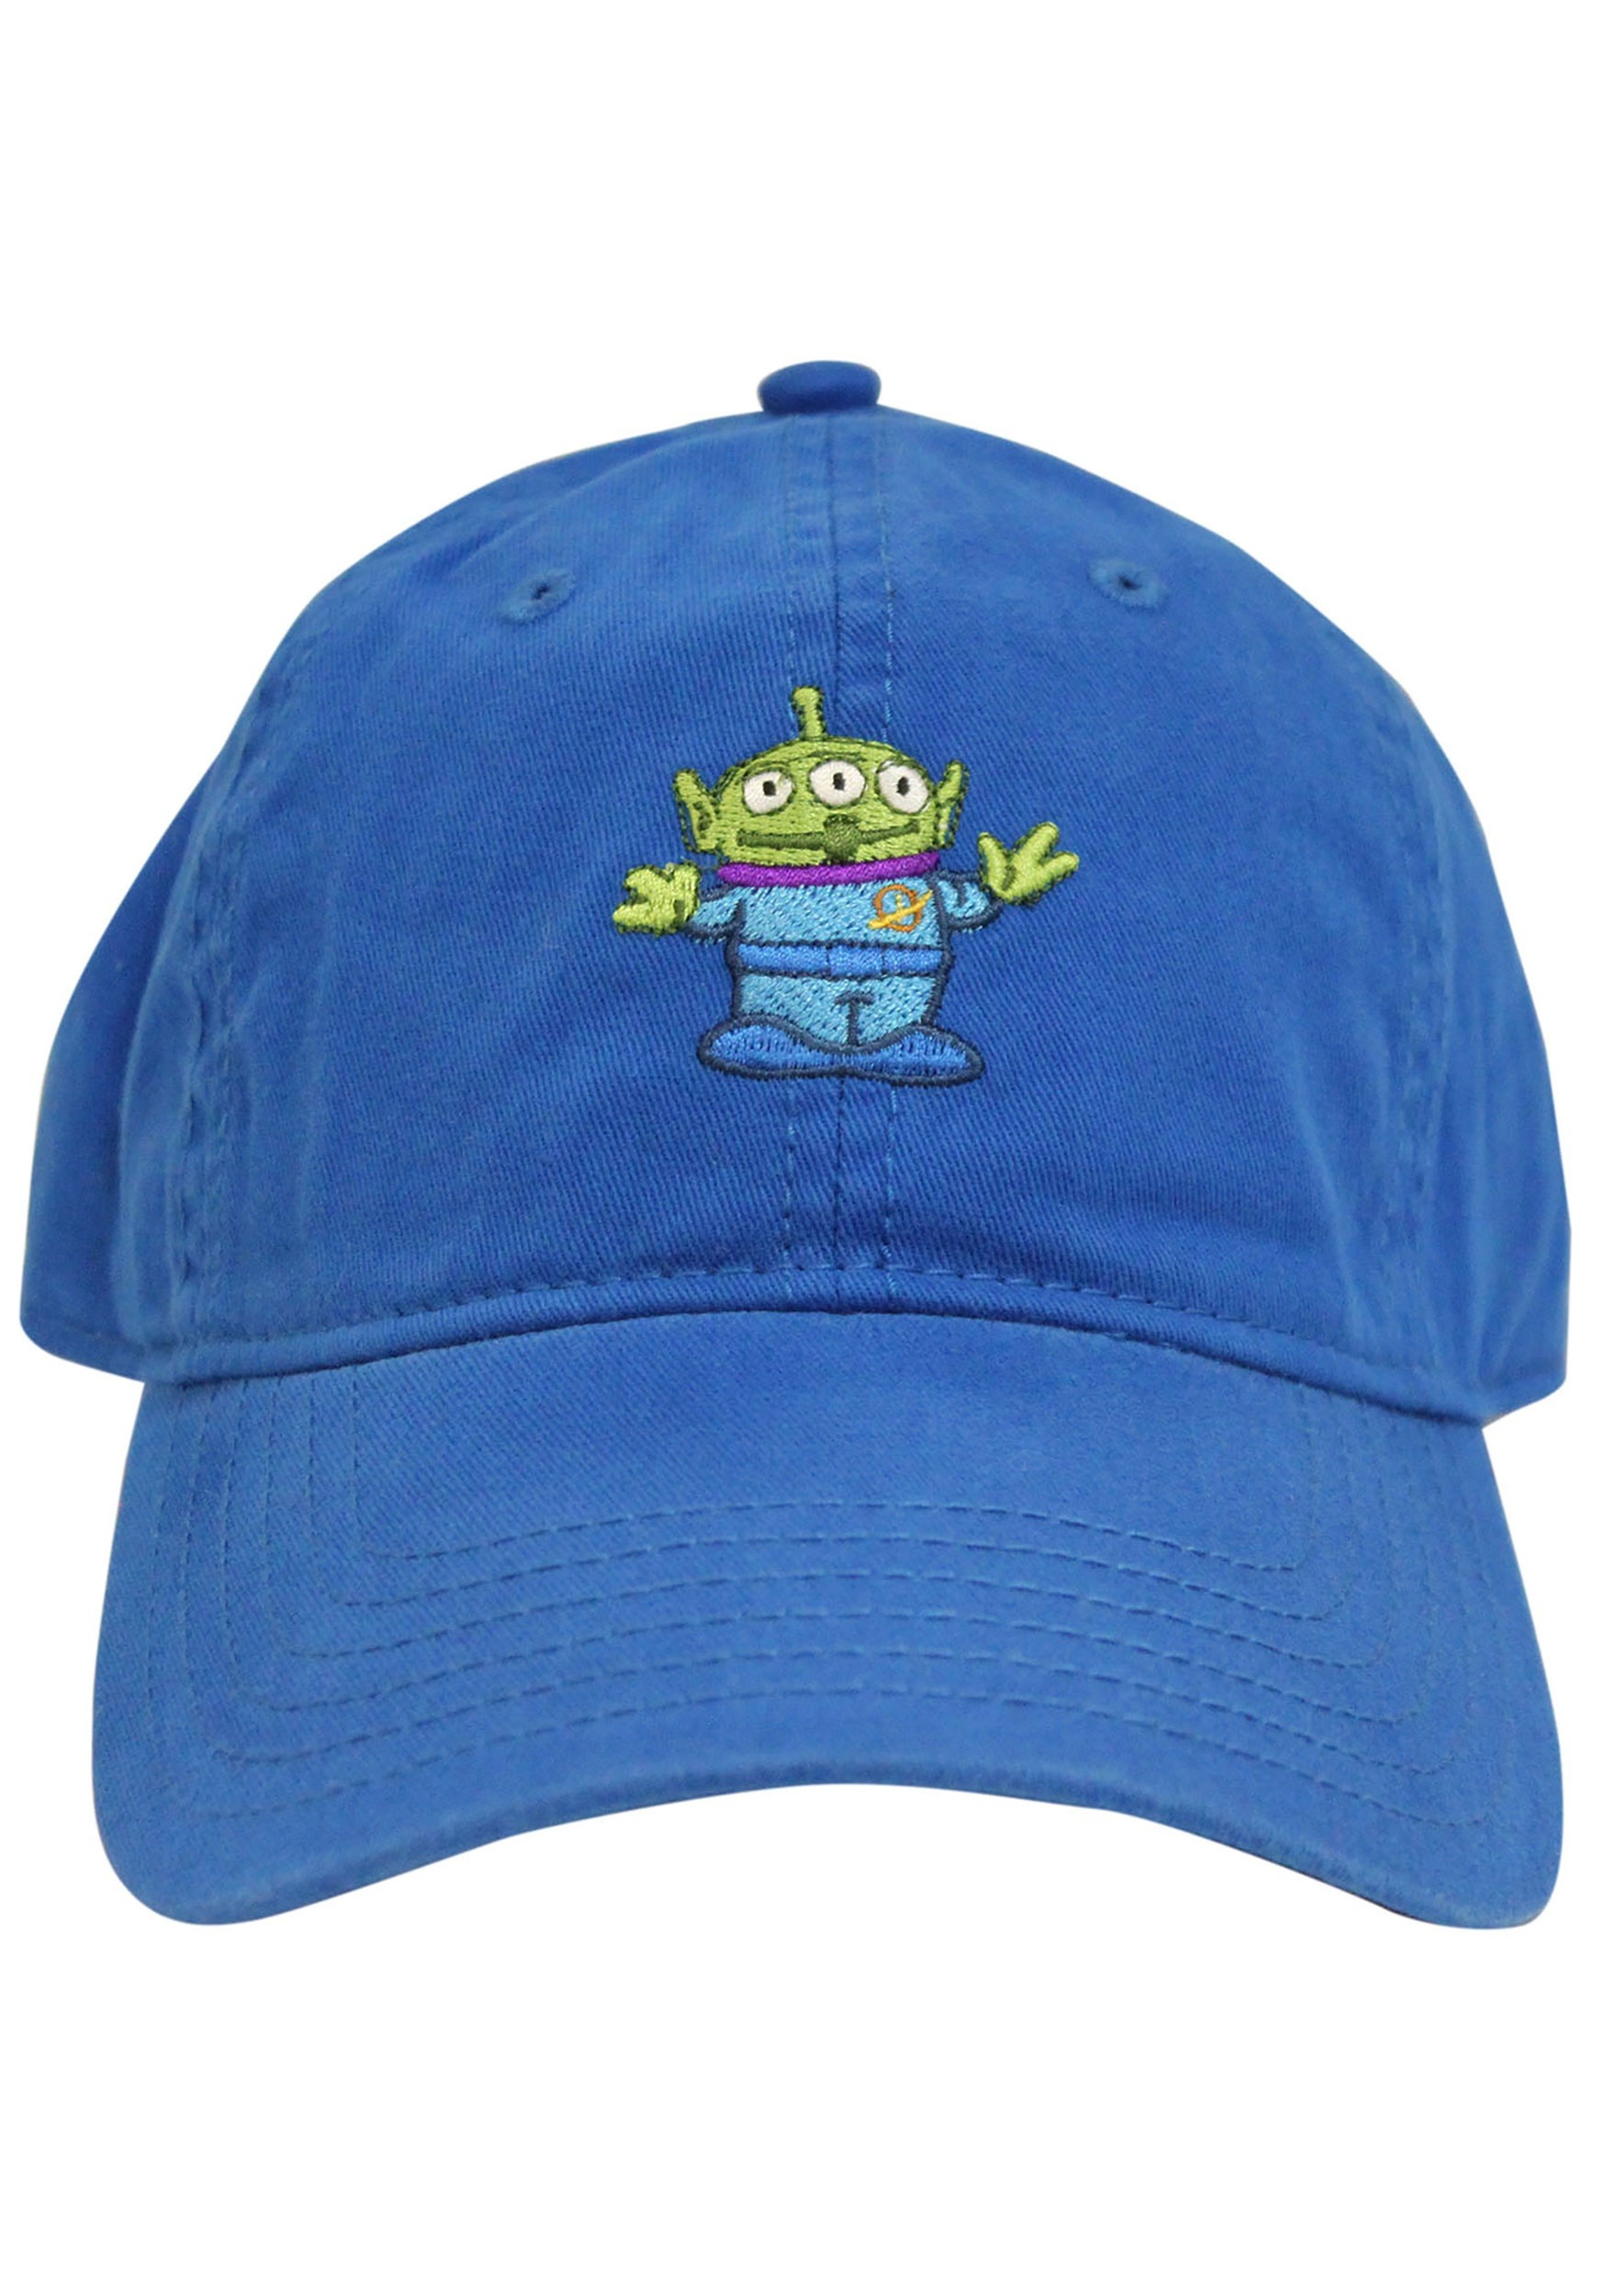 Toy Story Alien Dad Hat-update1 6f6e478f514f